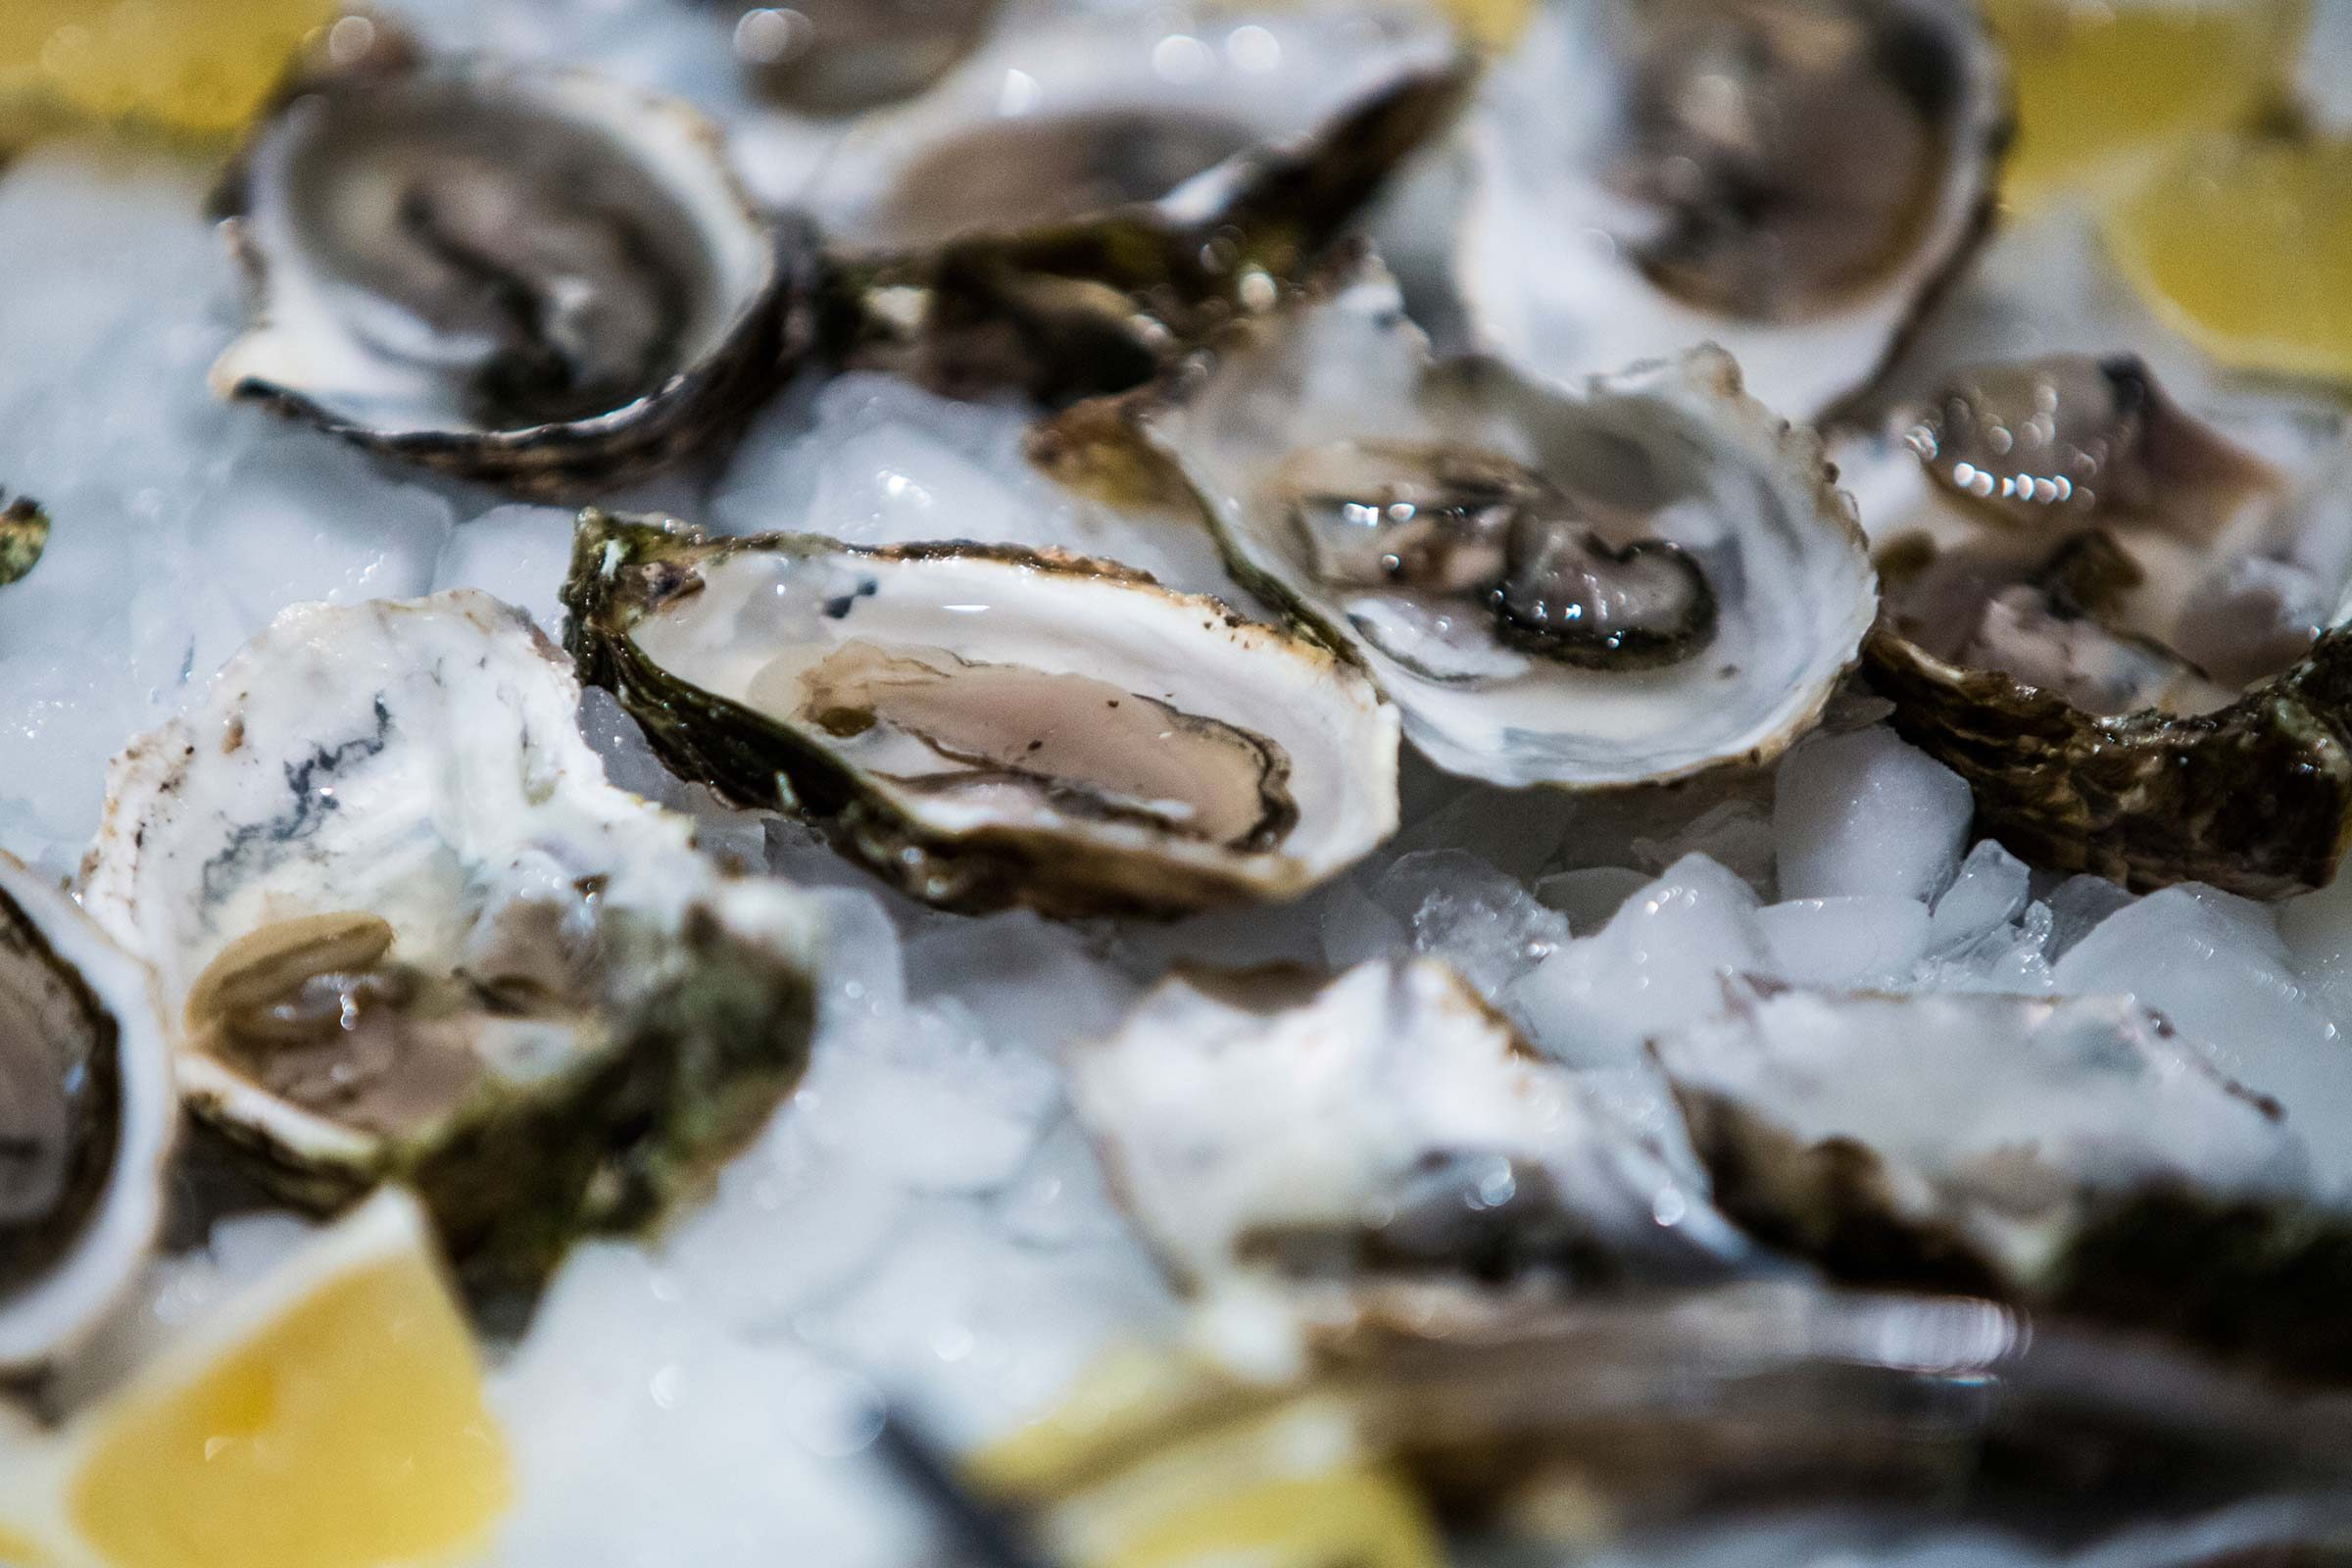 Genius uses for club soda readers digest help shuck oysters forumfinder Image collections